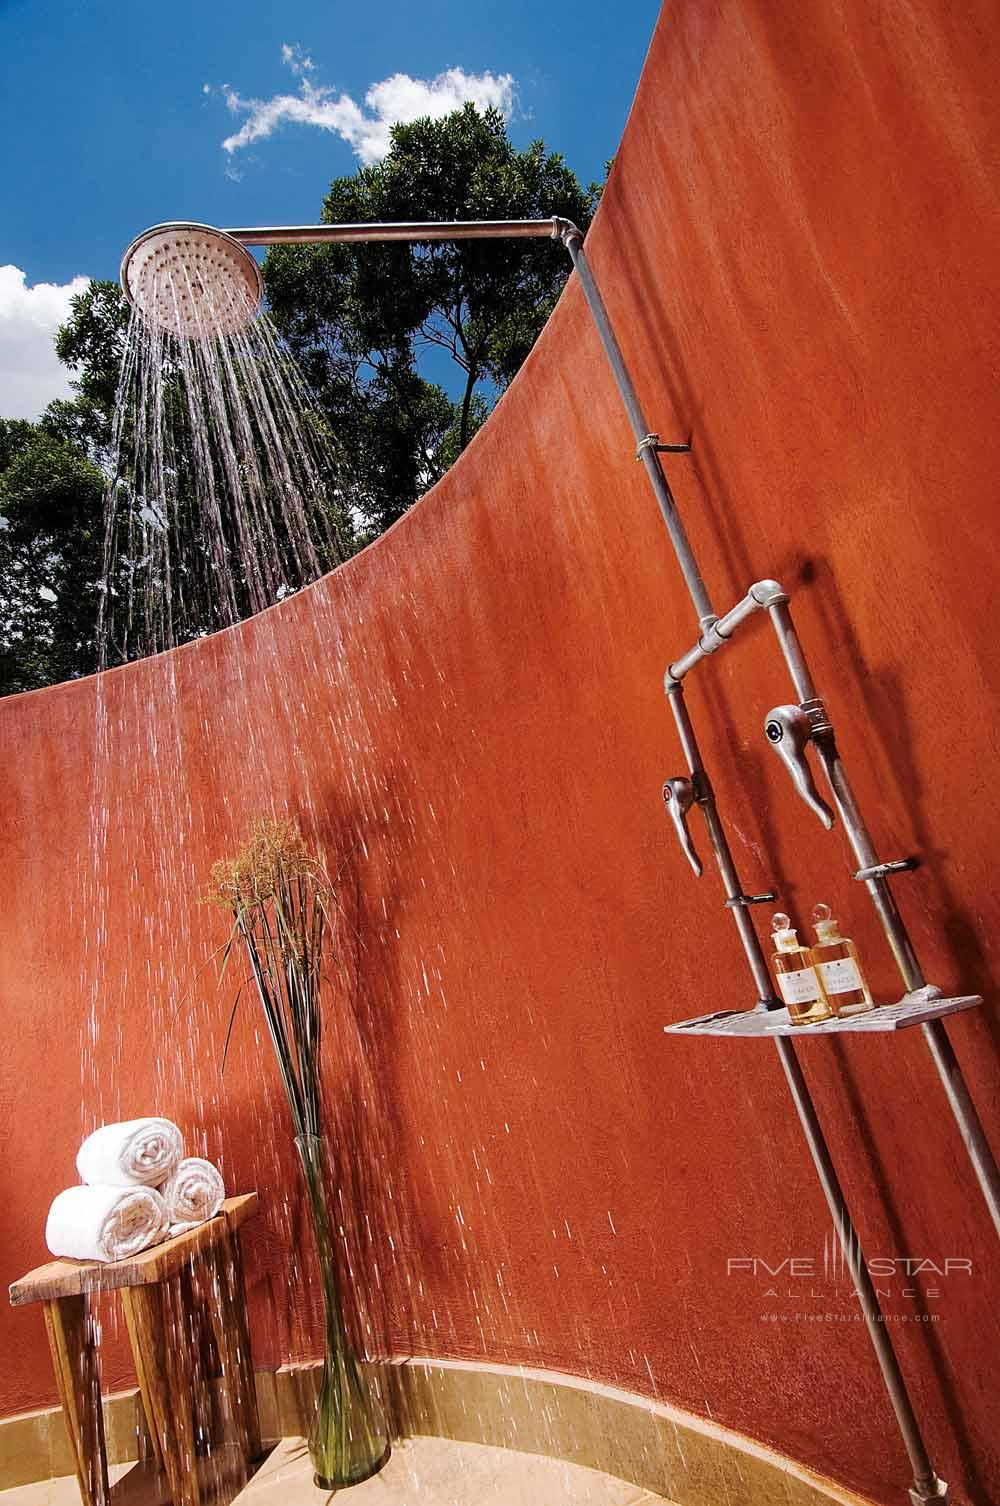 Outdoor Rain Shower at Fairmont Mara Safari Club